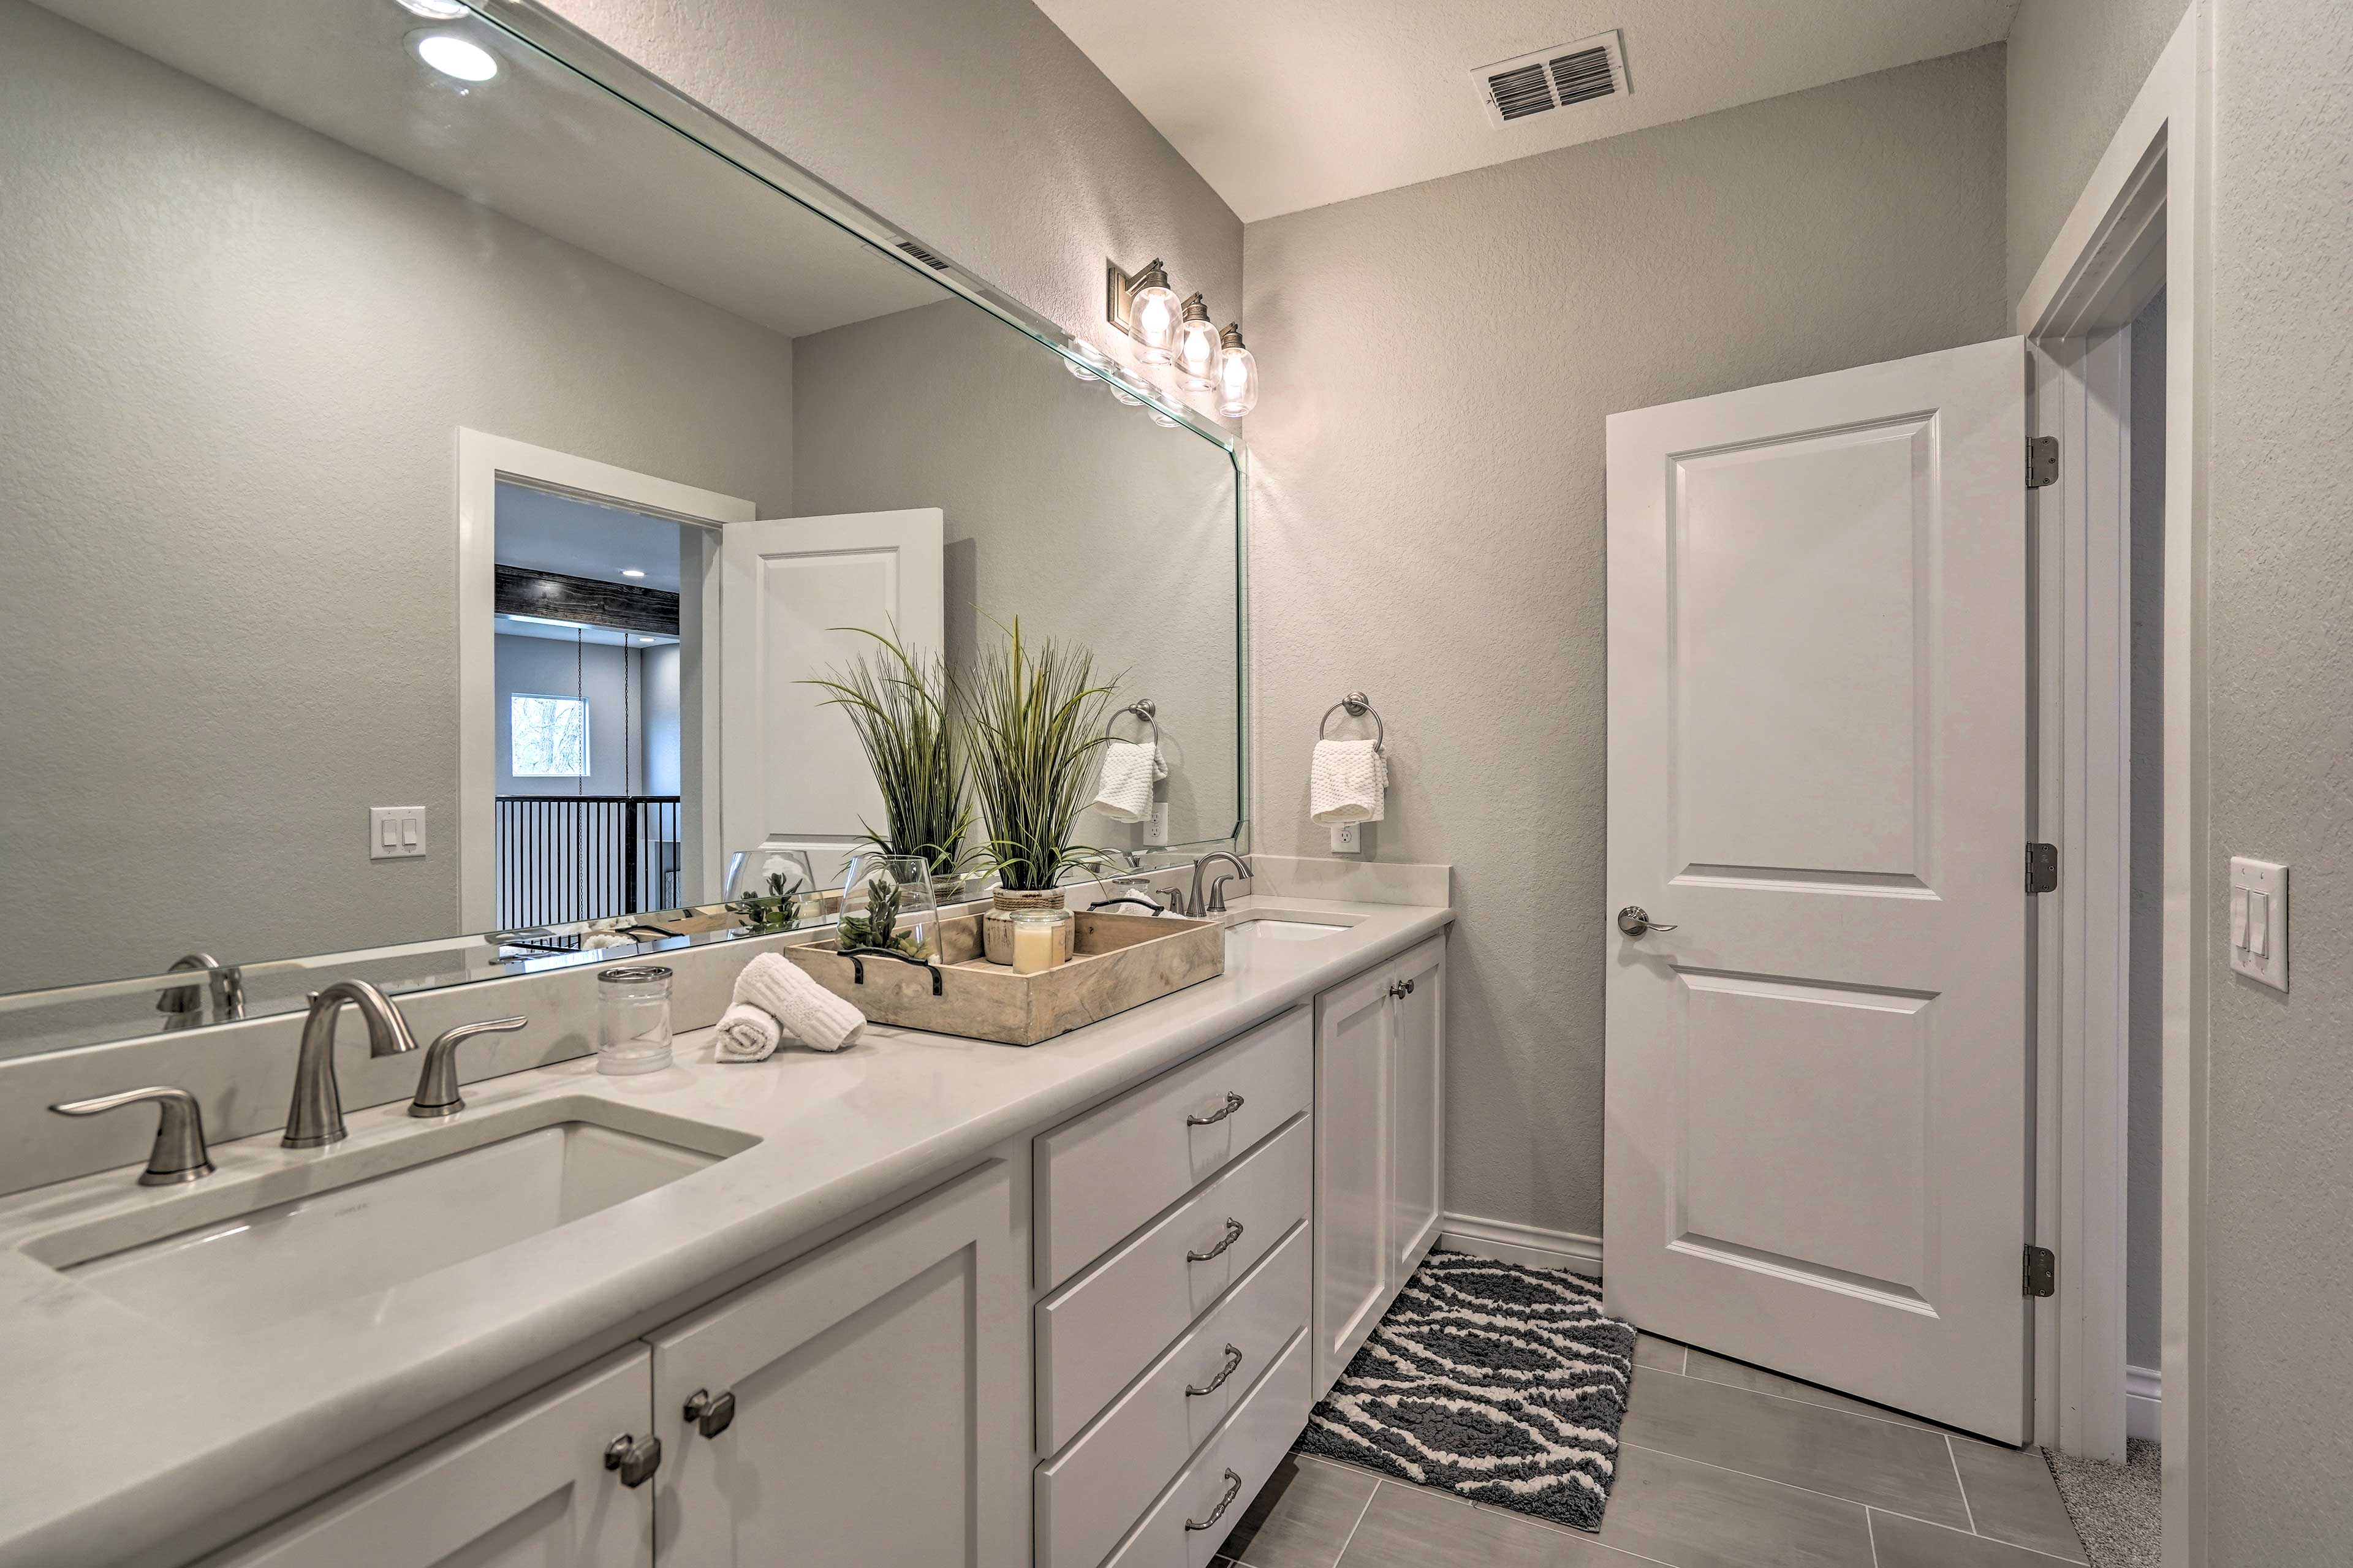 His-and-hers sinks make this bathroom easy to share.